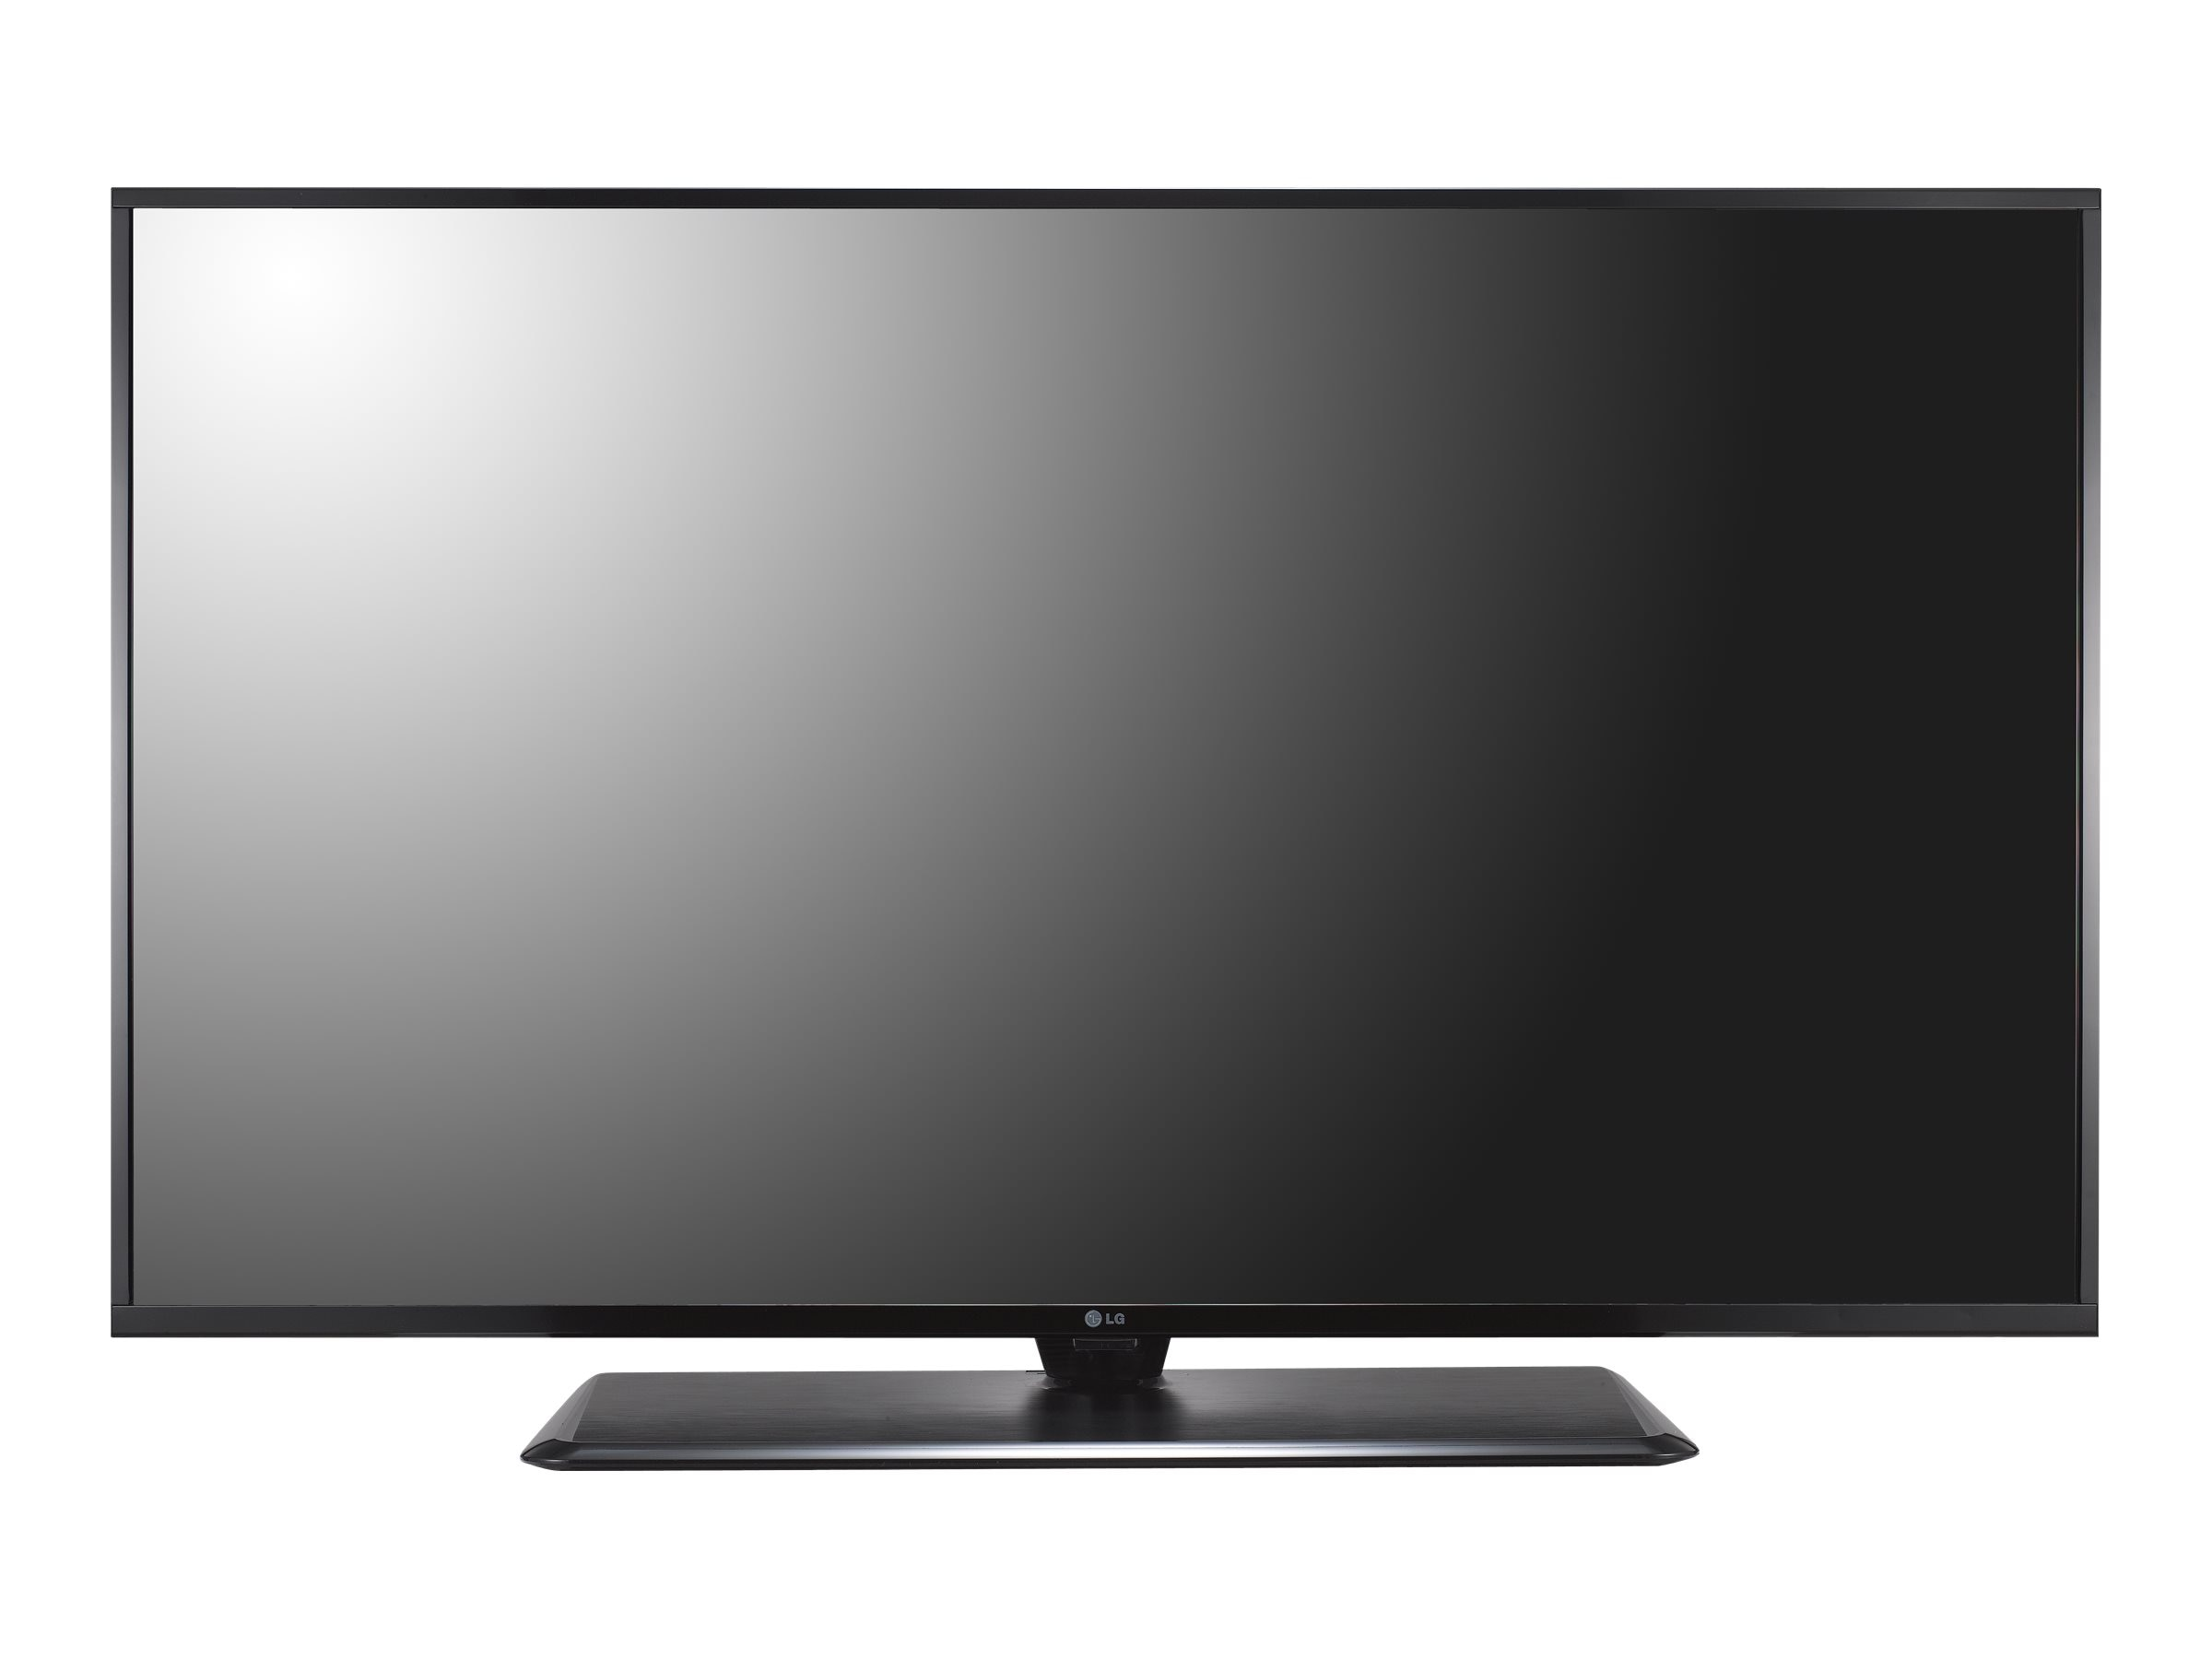 LG 39.5 LX560H Full HD LED-LCD Hospitality TV, Black